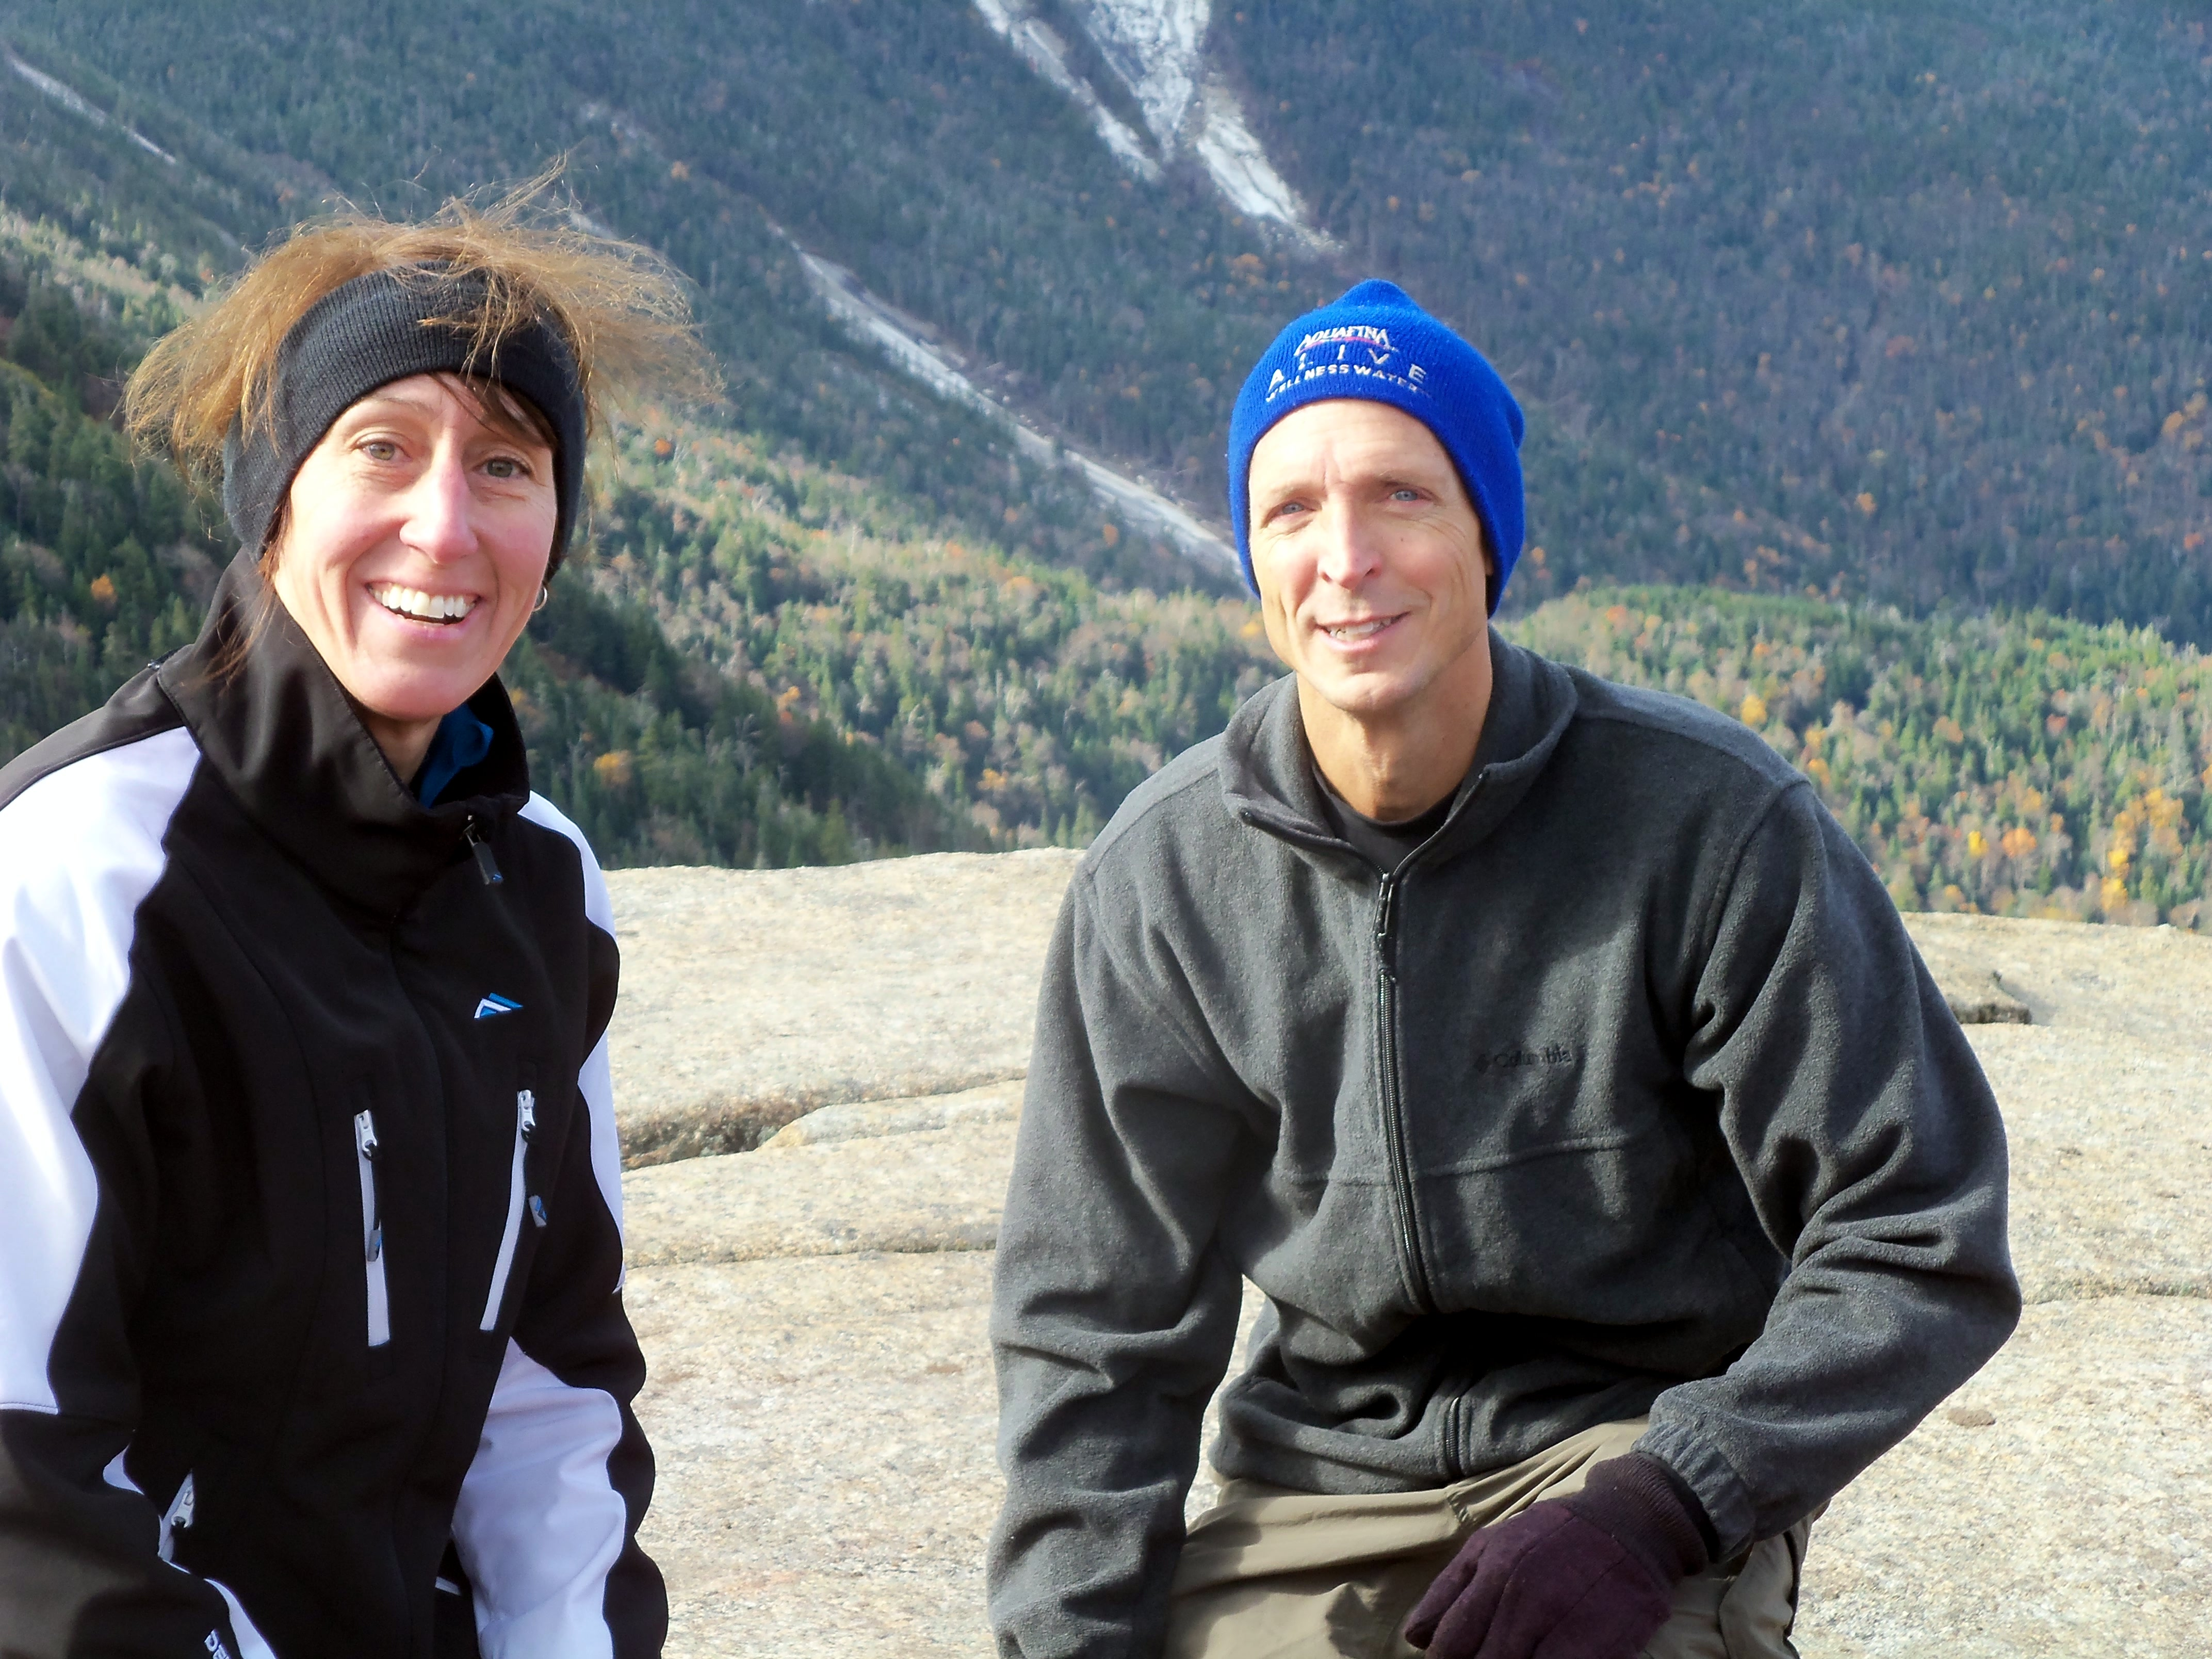 46ers on Armstrong in the Adirondacks